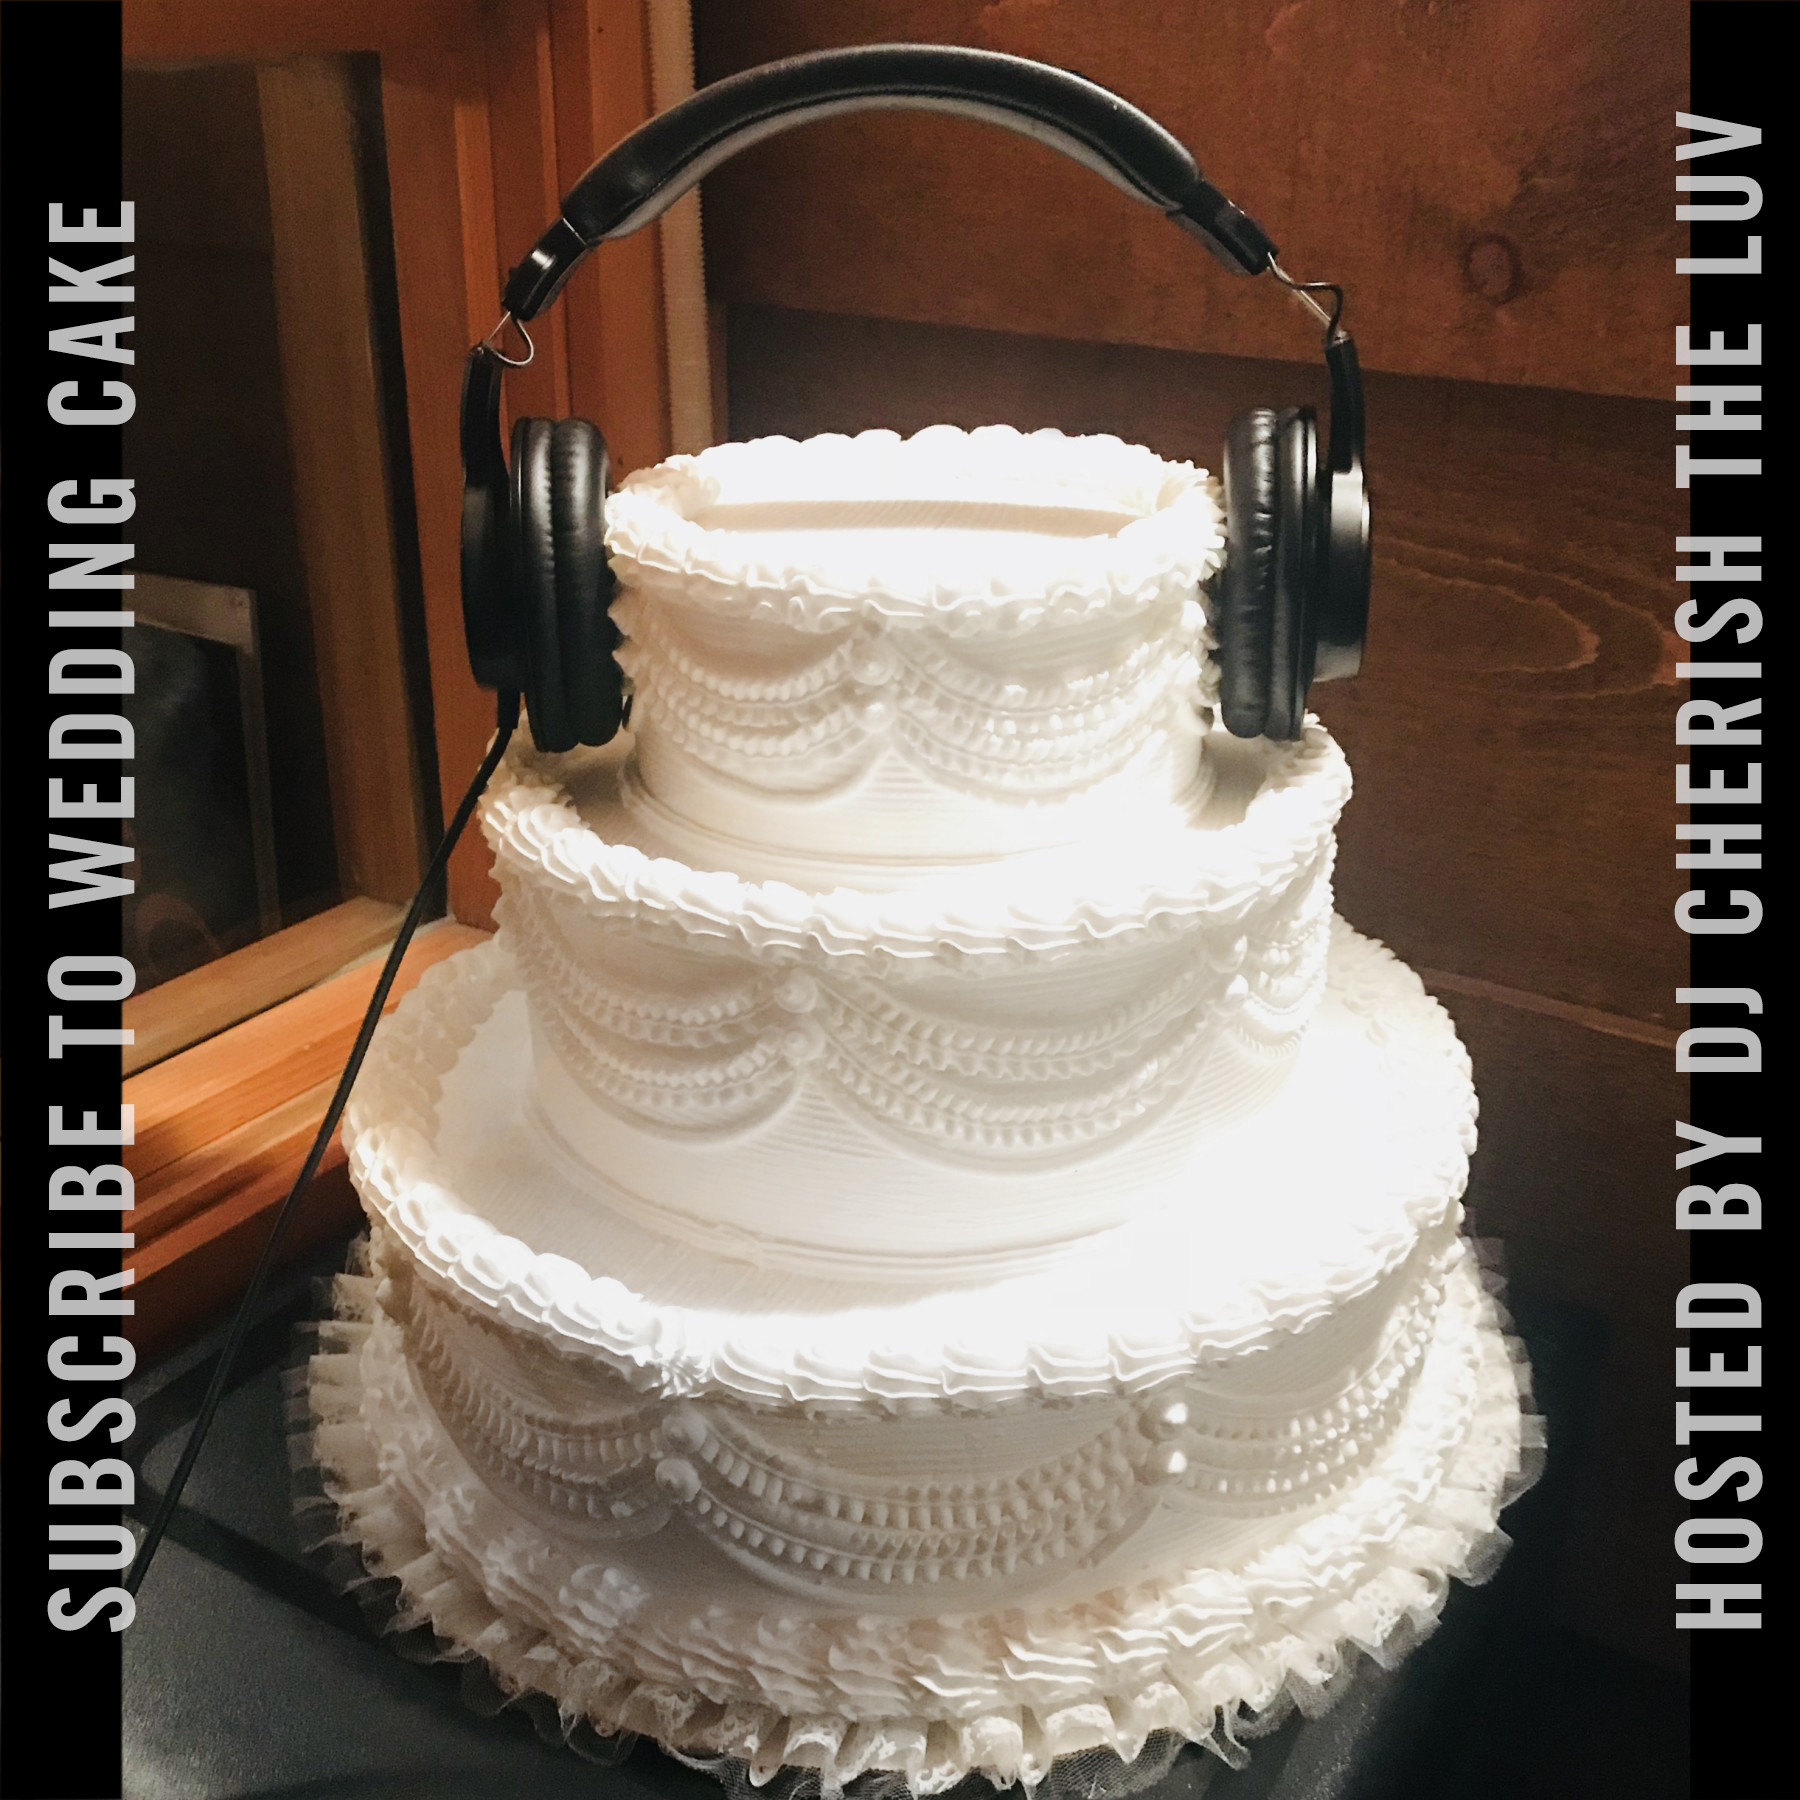 Wedding music ideas heritage radio network wedding cake is powered by simplecast junglespirit Image collections